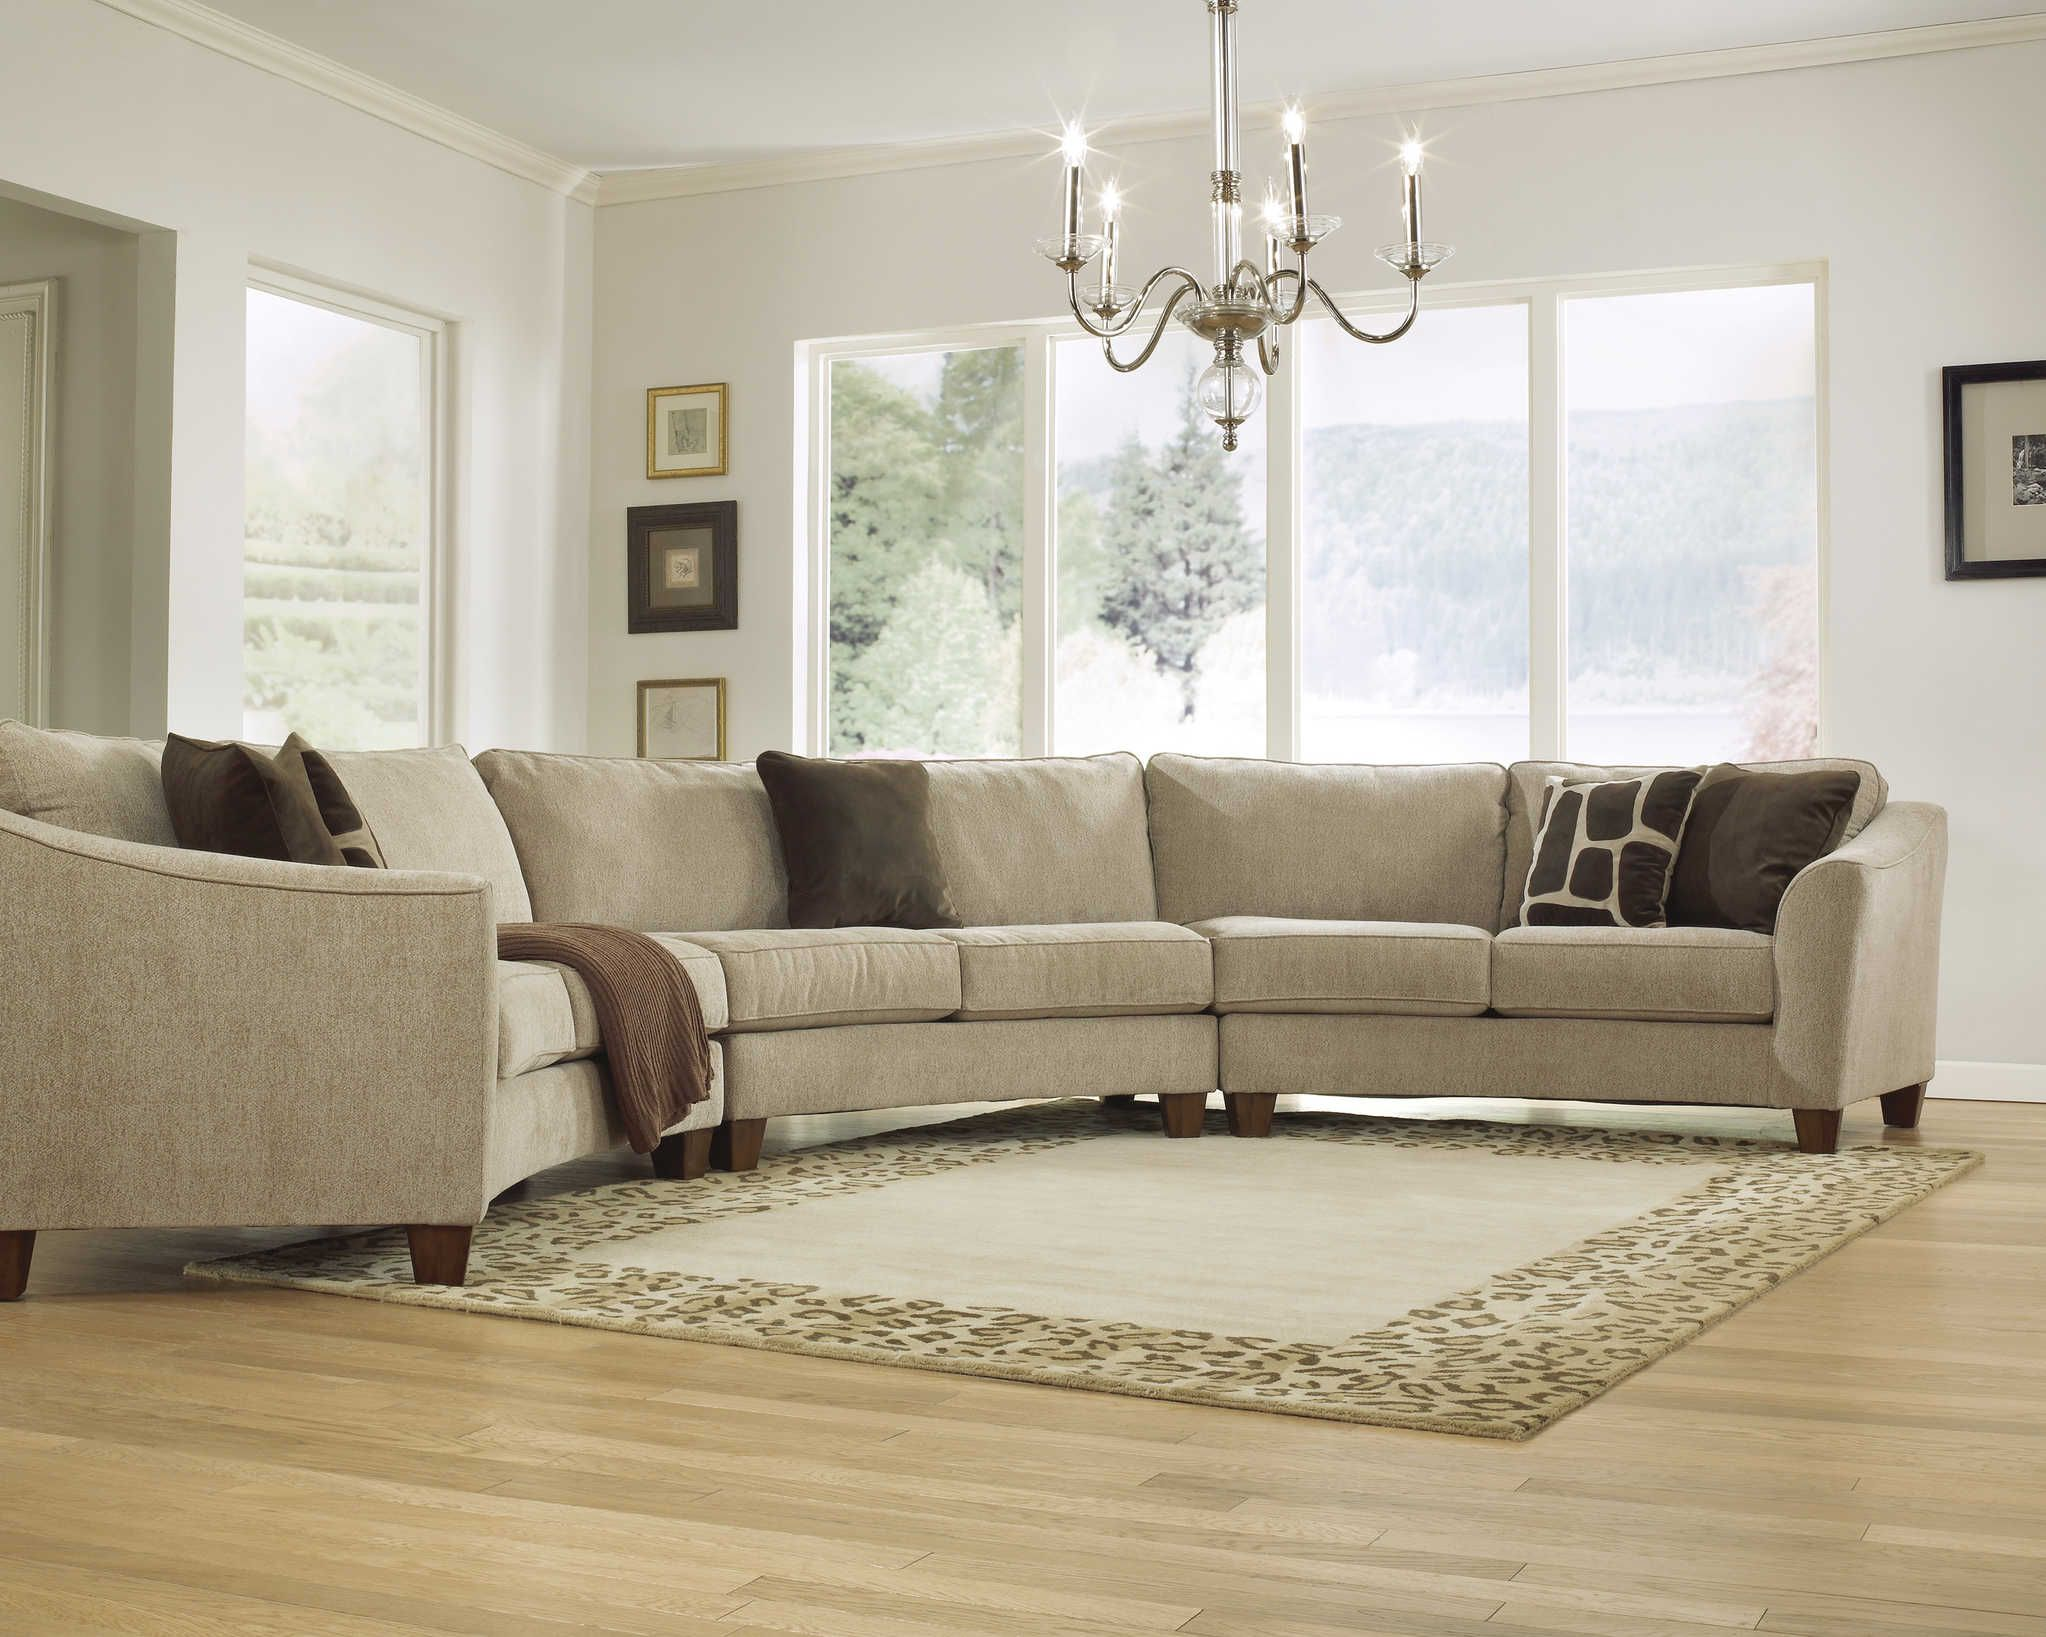 Living Room Designs With Sectionals Alluring 2959Curvaceous Beauty  Curved Sectional Sofa Set In Classic Review